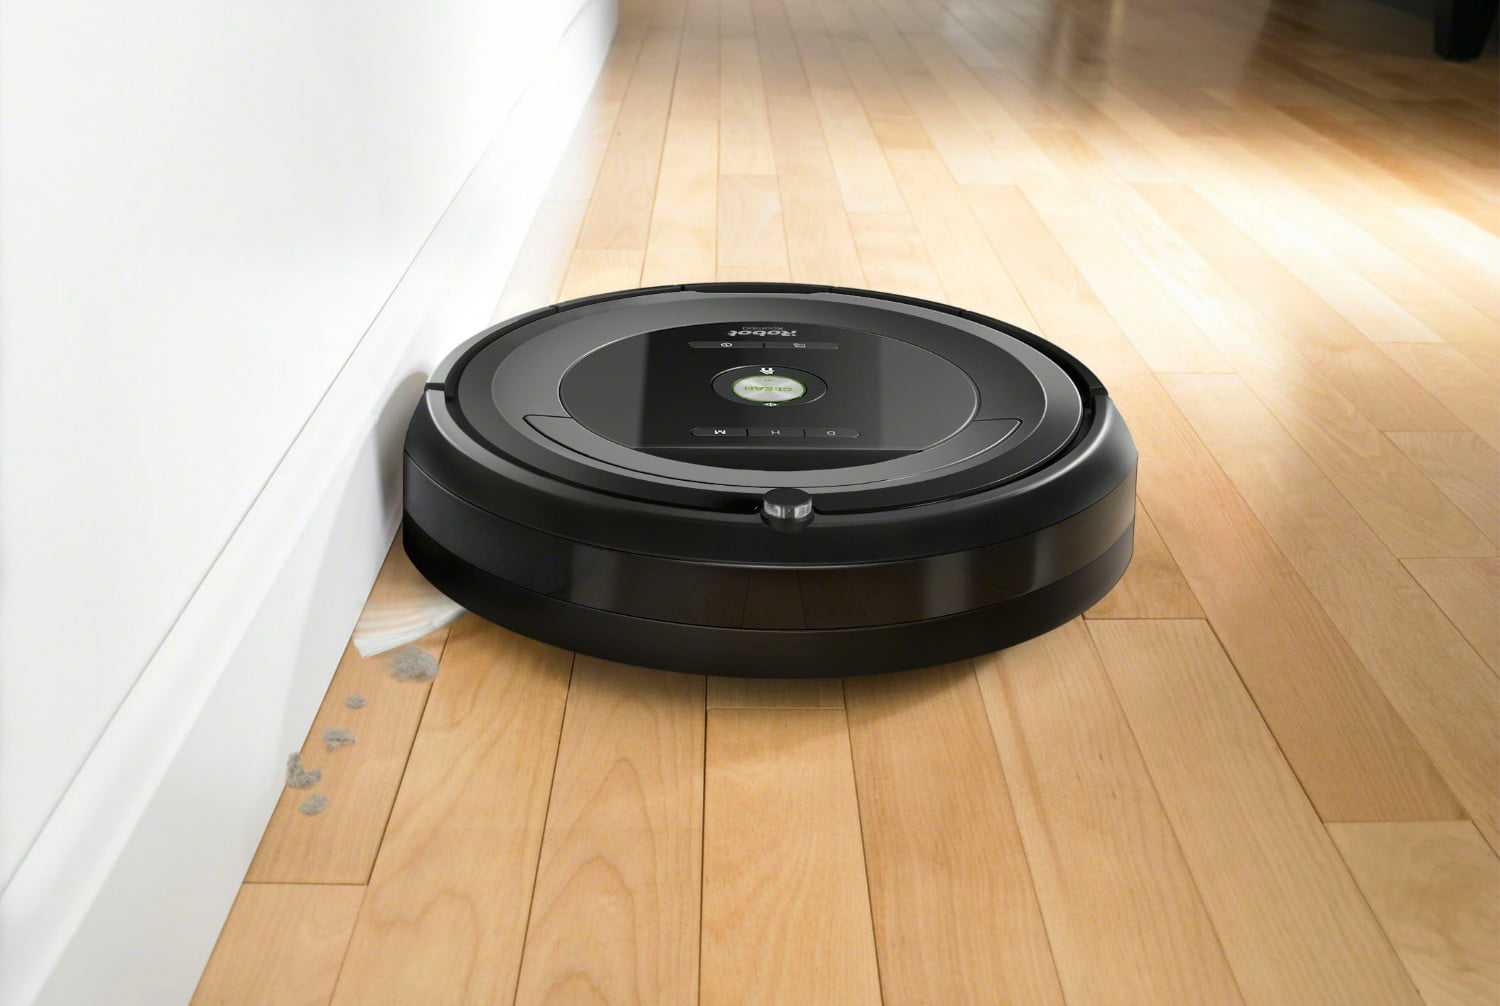 Enjoy cleaner floors every day with the Roomba 680, now only $240 at Walmart